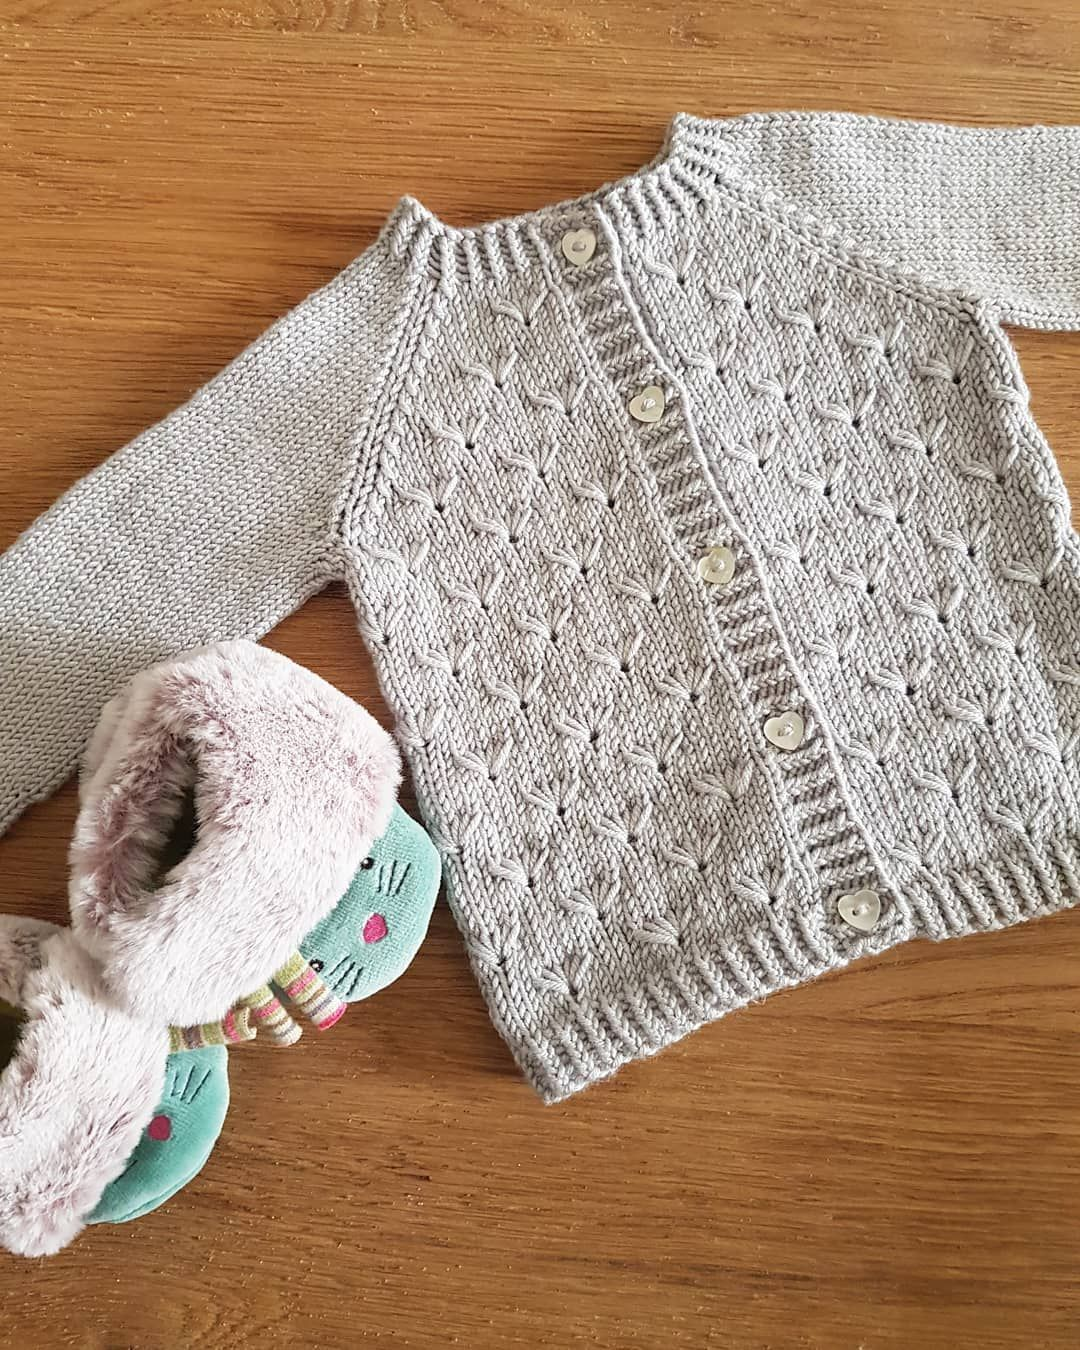 52 Free Beautiful Baby Knitting & Crochet Patterns for 2019 – Page 24 of 56 – Crochet Blog!